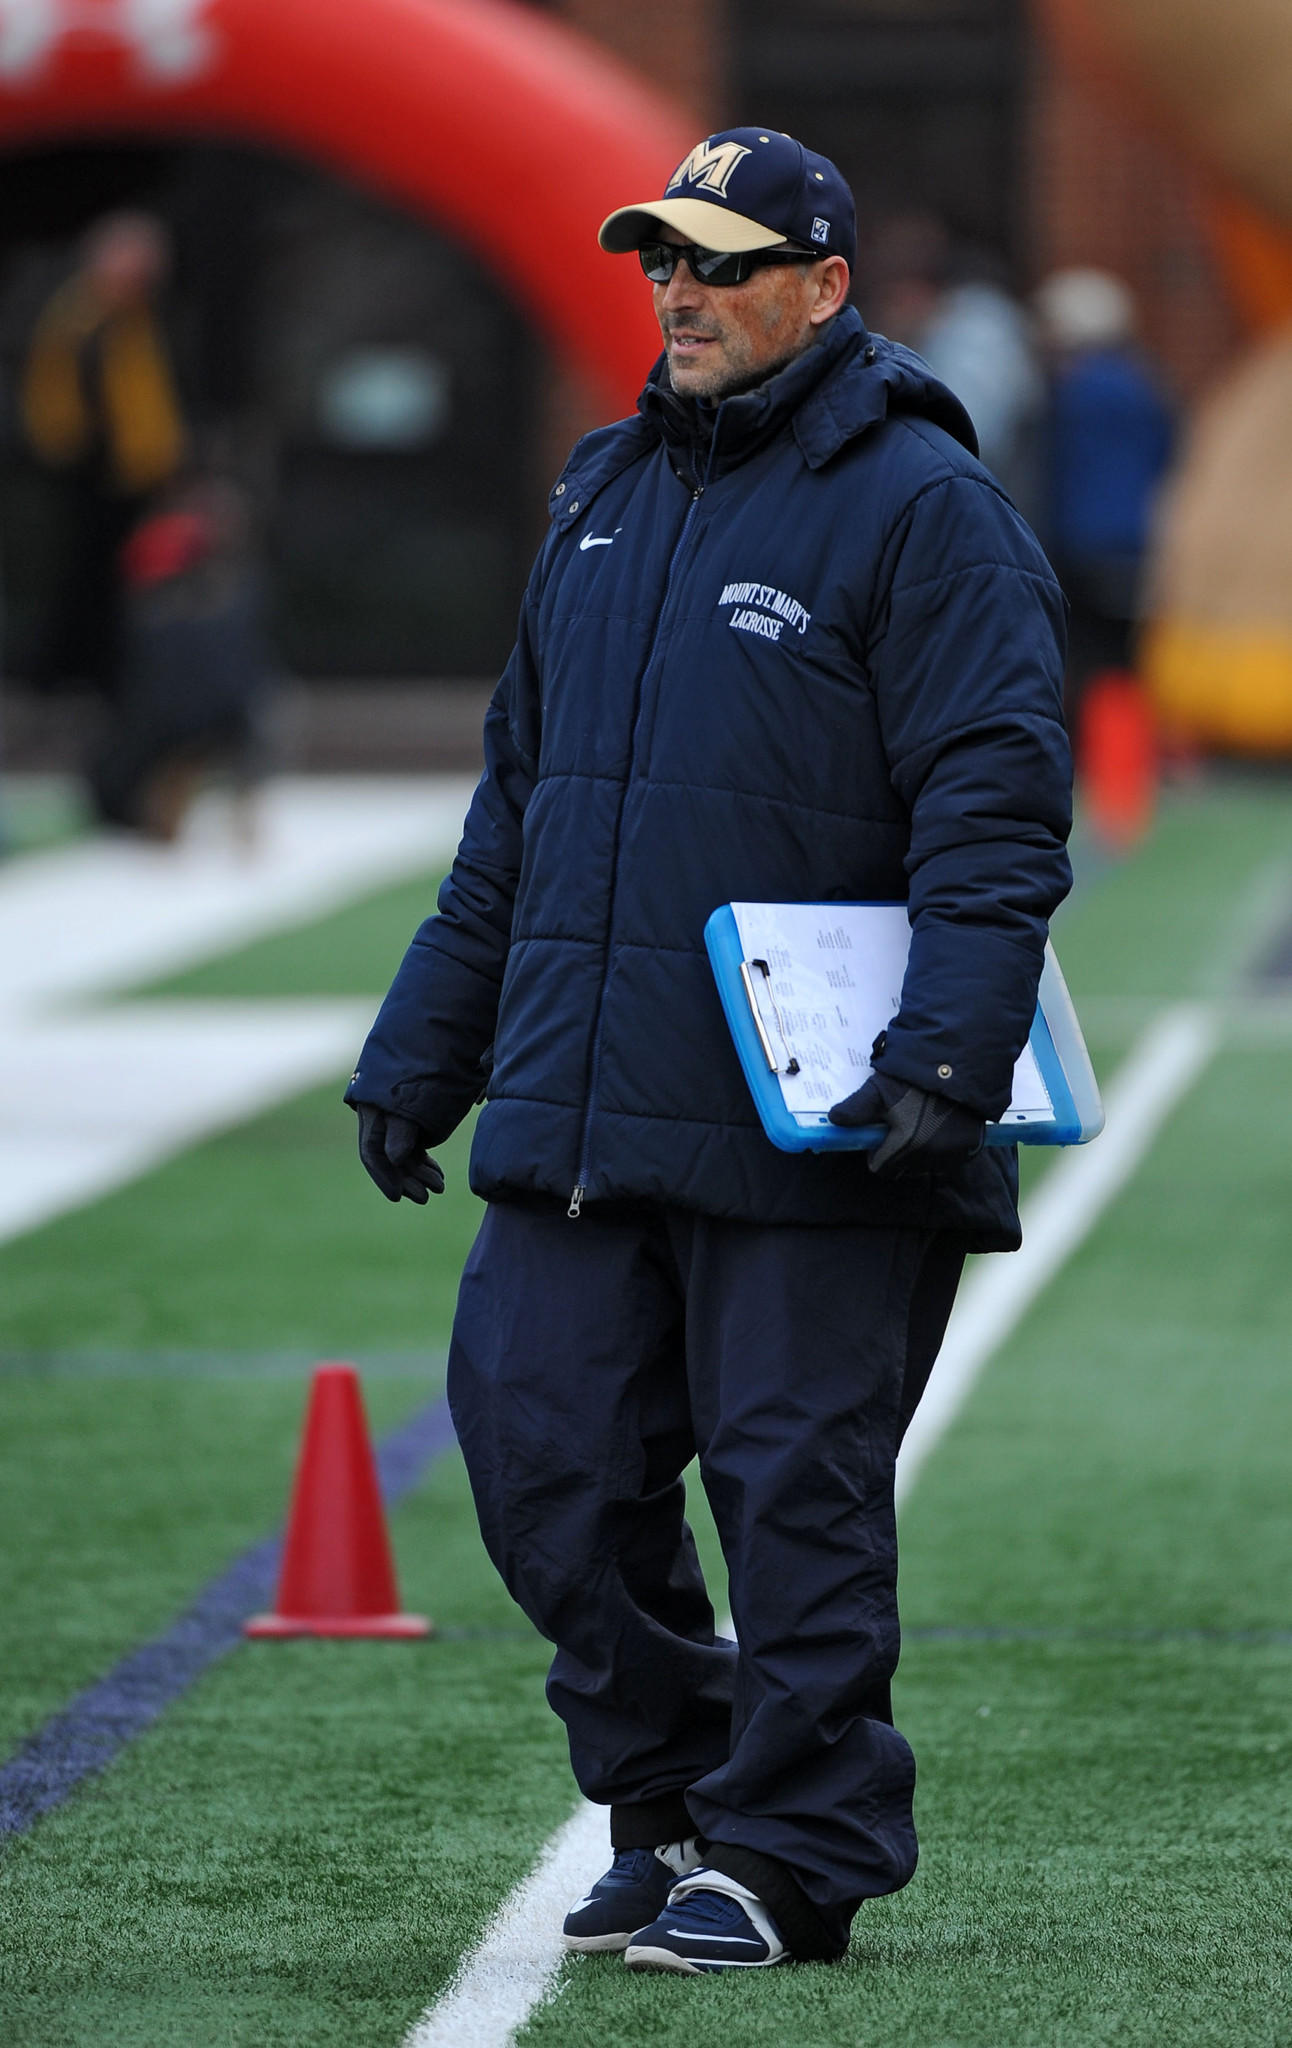 """""""Every loss hurts, but that one was one that we let get away on account that we didnt stay fully committed for 60 minutes,"""" Mount St. Mary's men's lacrosse coach Tom Gravante said of a defeat against then-winless Manhattan on Sunday."""